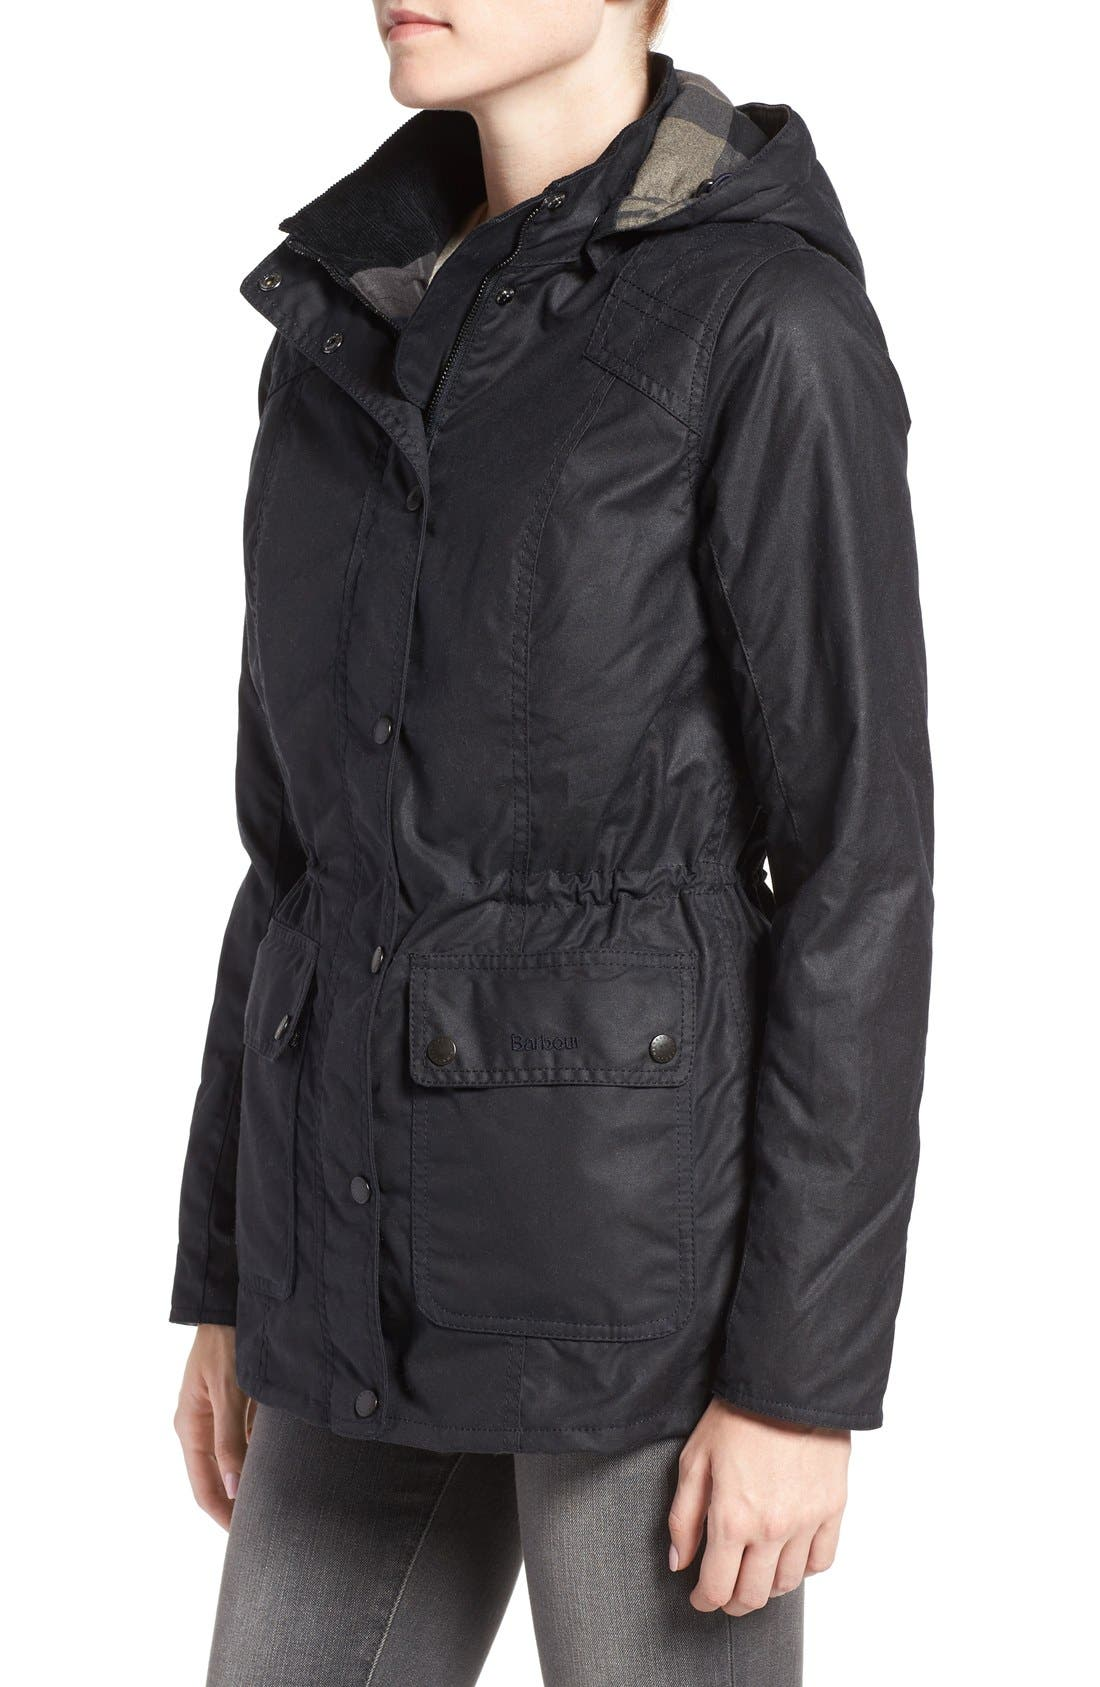 Alternate Image 3  - Barbour 'Orkney' Waxed Cotton Anorak with Removable Hood